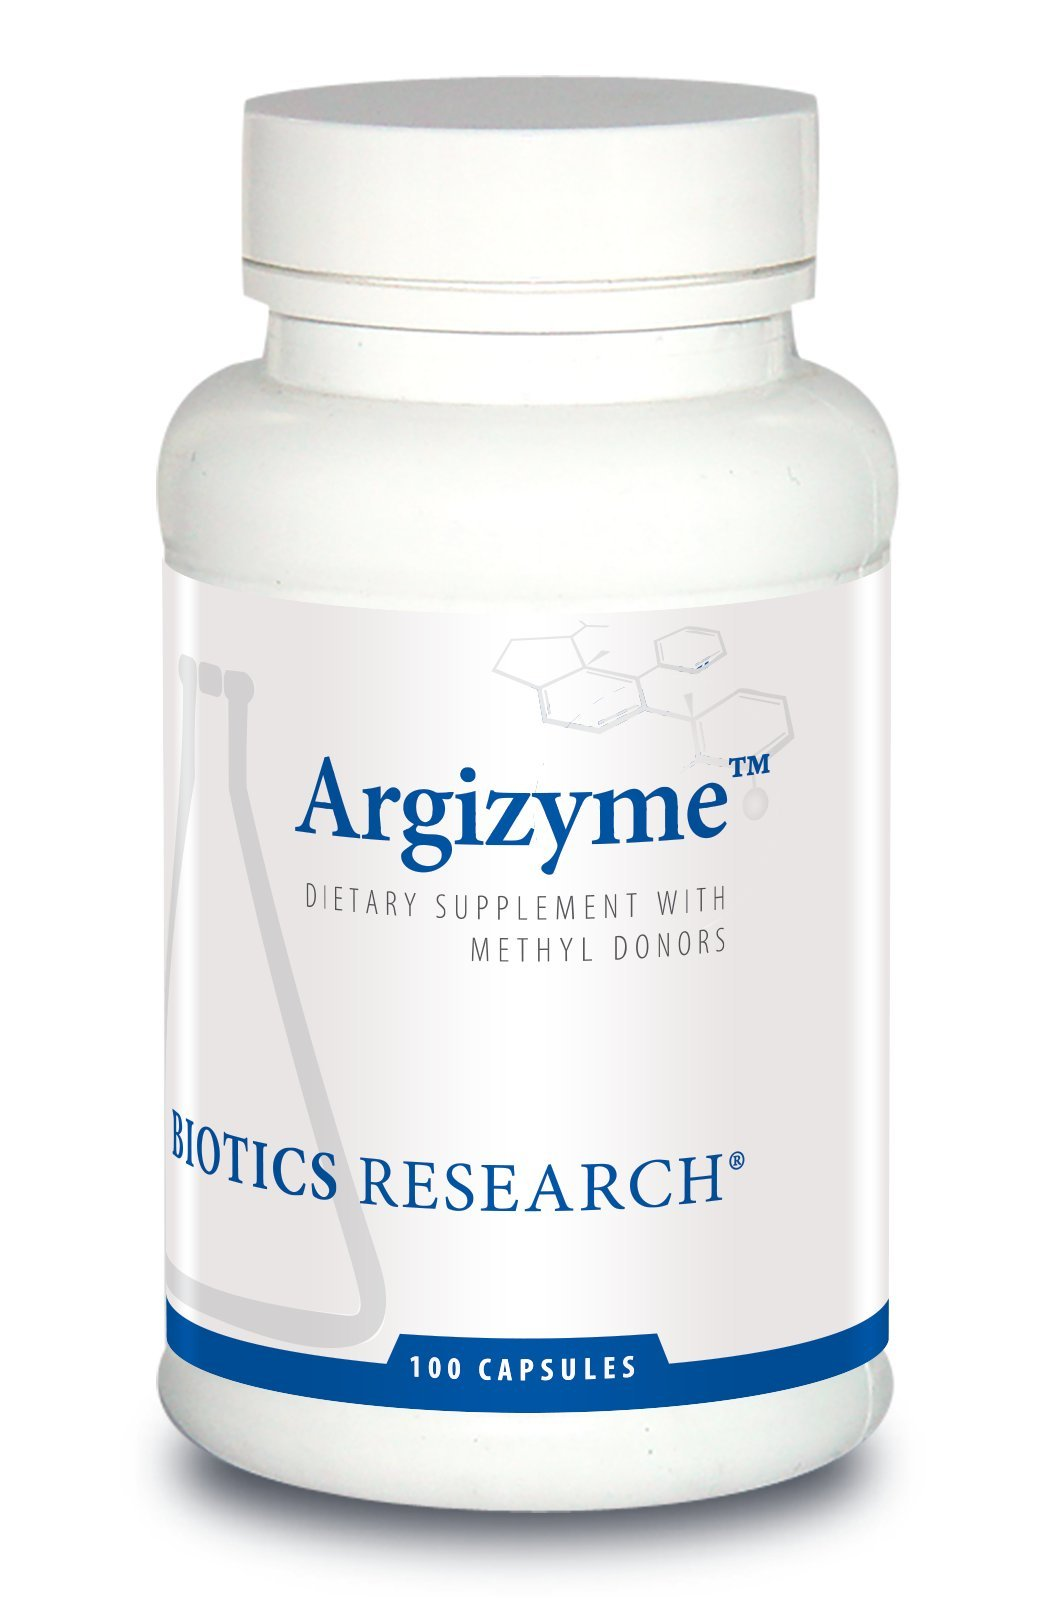 Biotics Research ArgizymeTM- Nutritional Support for Healthy Kidneys, Amino Acids, Glandular Support, Urinary Tract Health, Beet Powder, Methyl Donor. 100 Capsules by BIOTICS